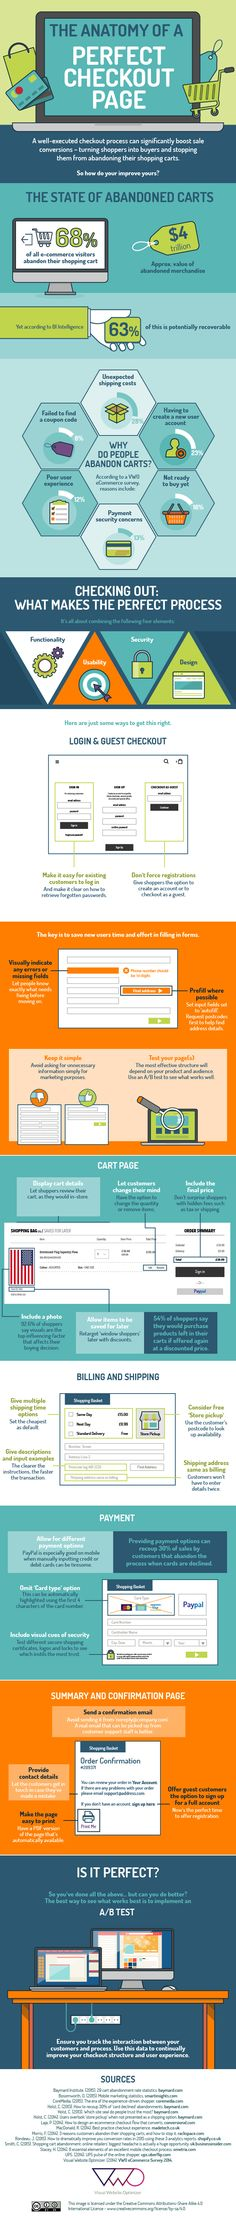 The-anatomy-of-a-perfect-checkout-page-V2